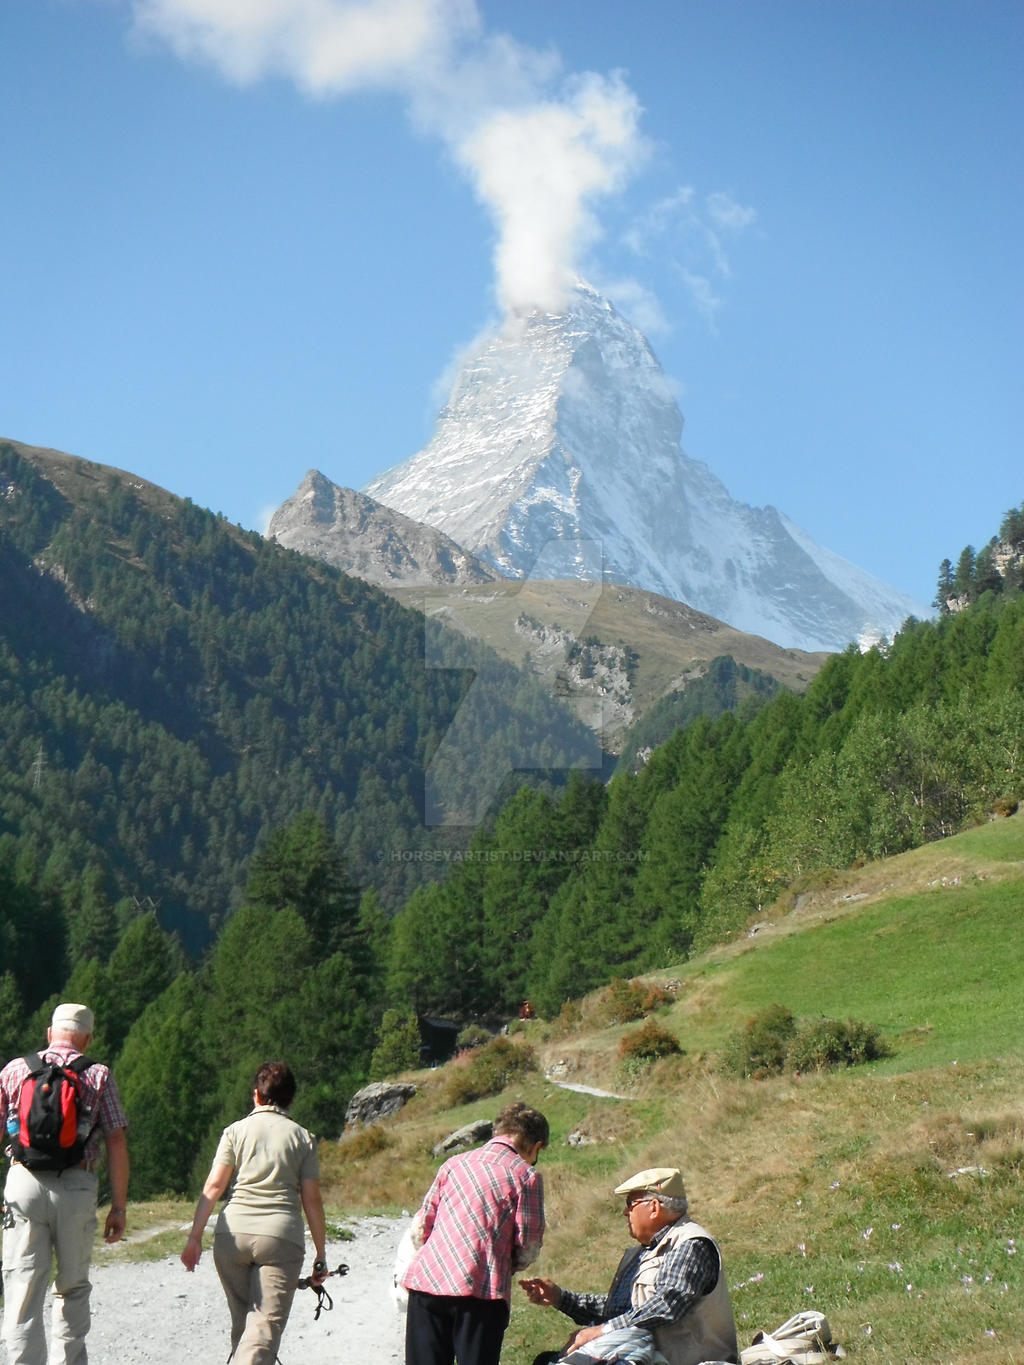 Matterhorn on a walk by HorseyArtist